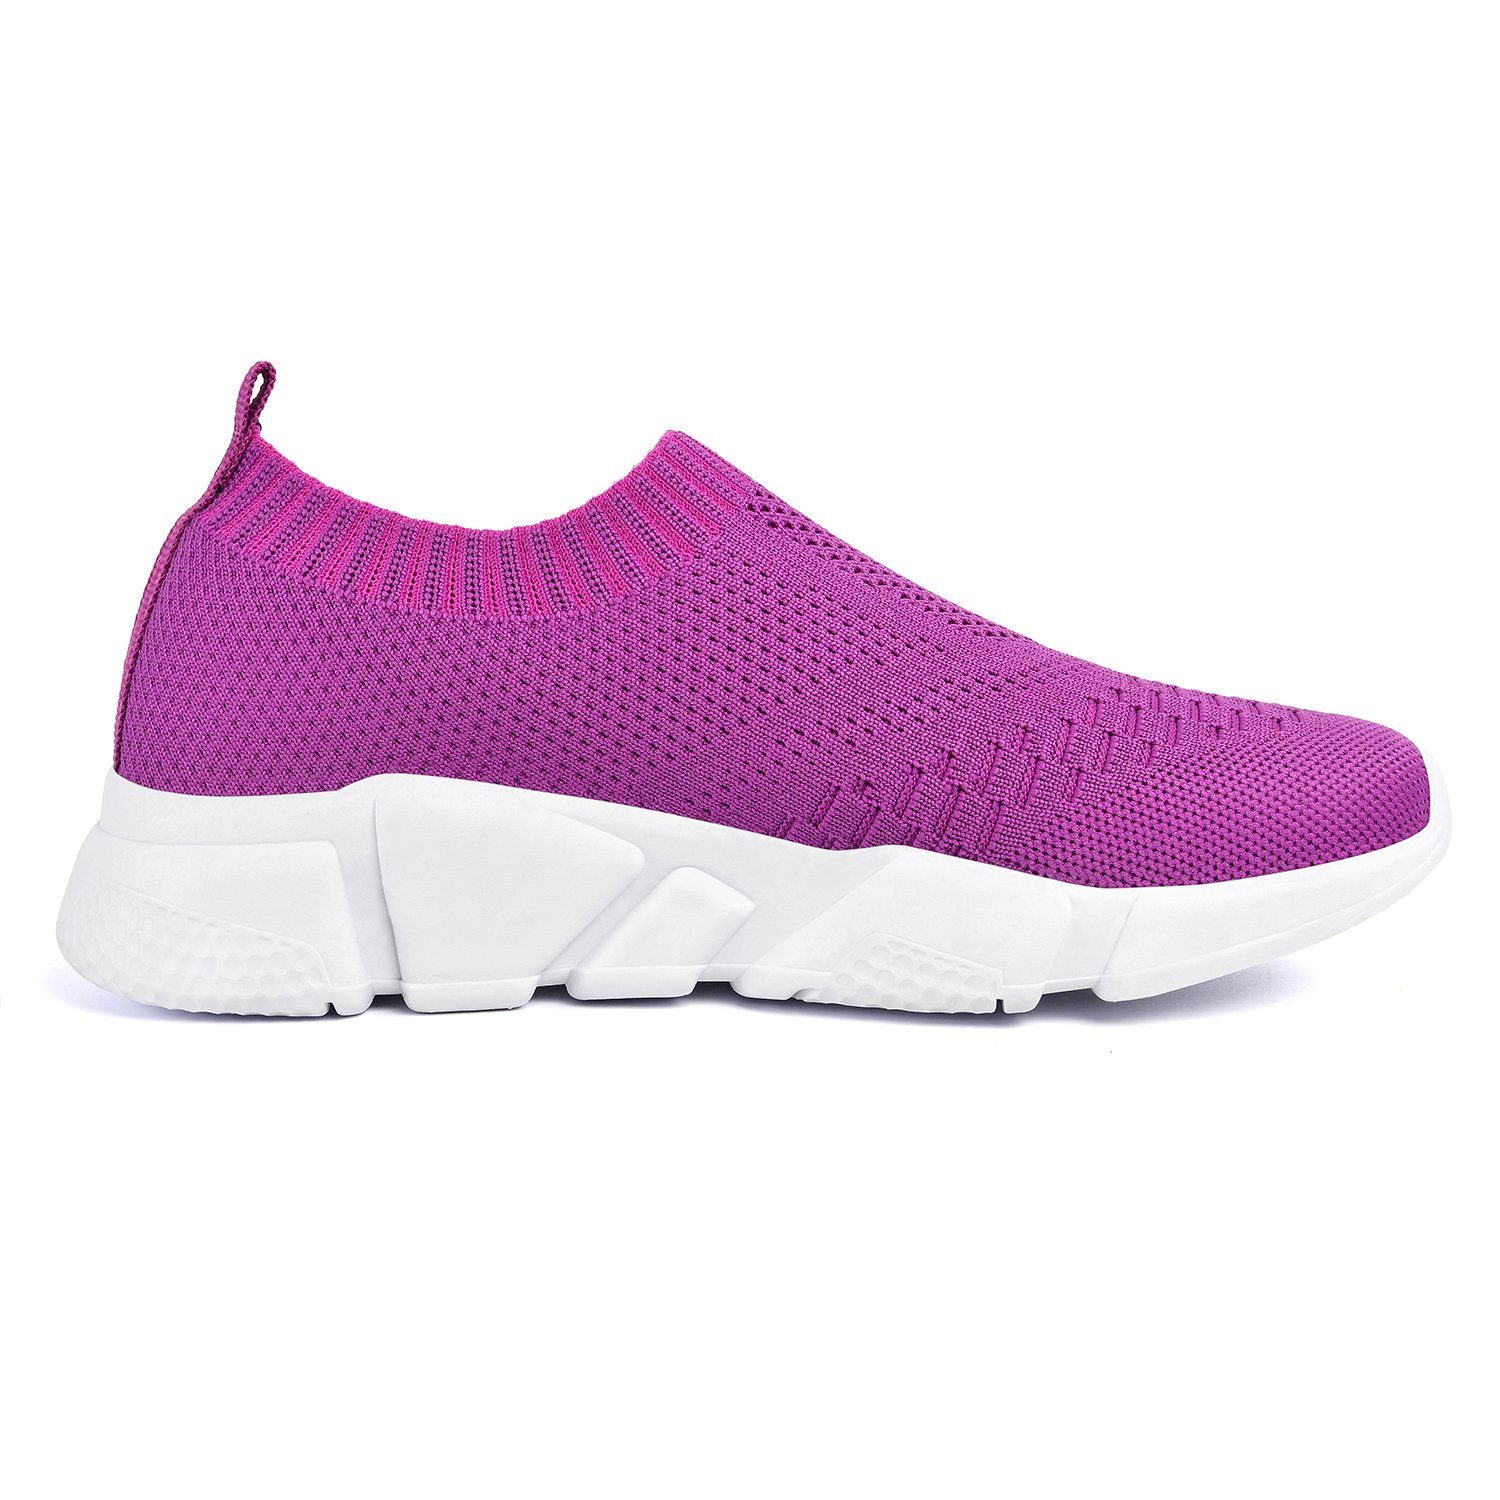 Mxson Women's Slip Casual On Sneaker Mesh Loafer Casual Slip Beach Street Sports Walking Shoes (New Size Version) B07C2117H9 7 B(M) US|Purple 40205a